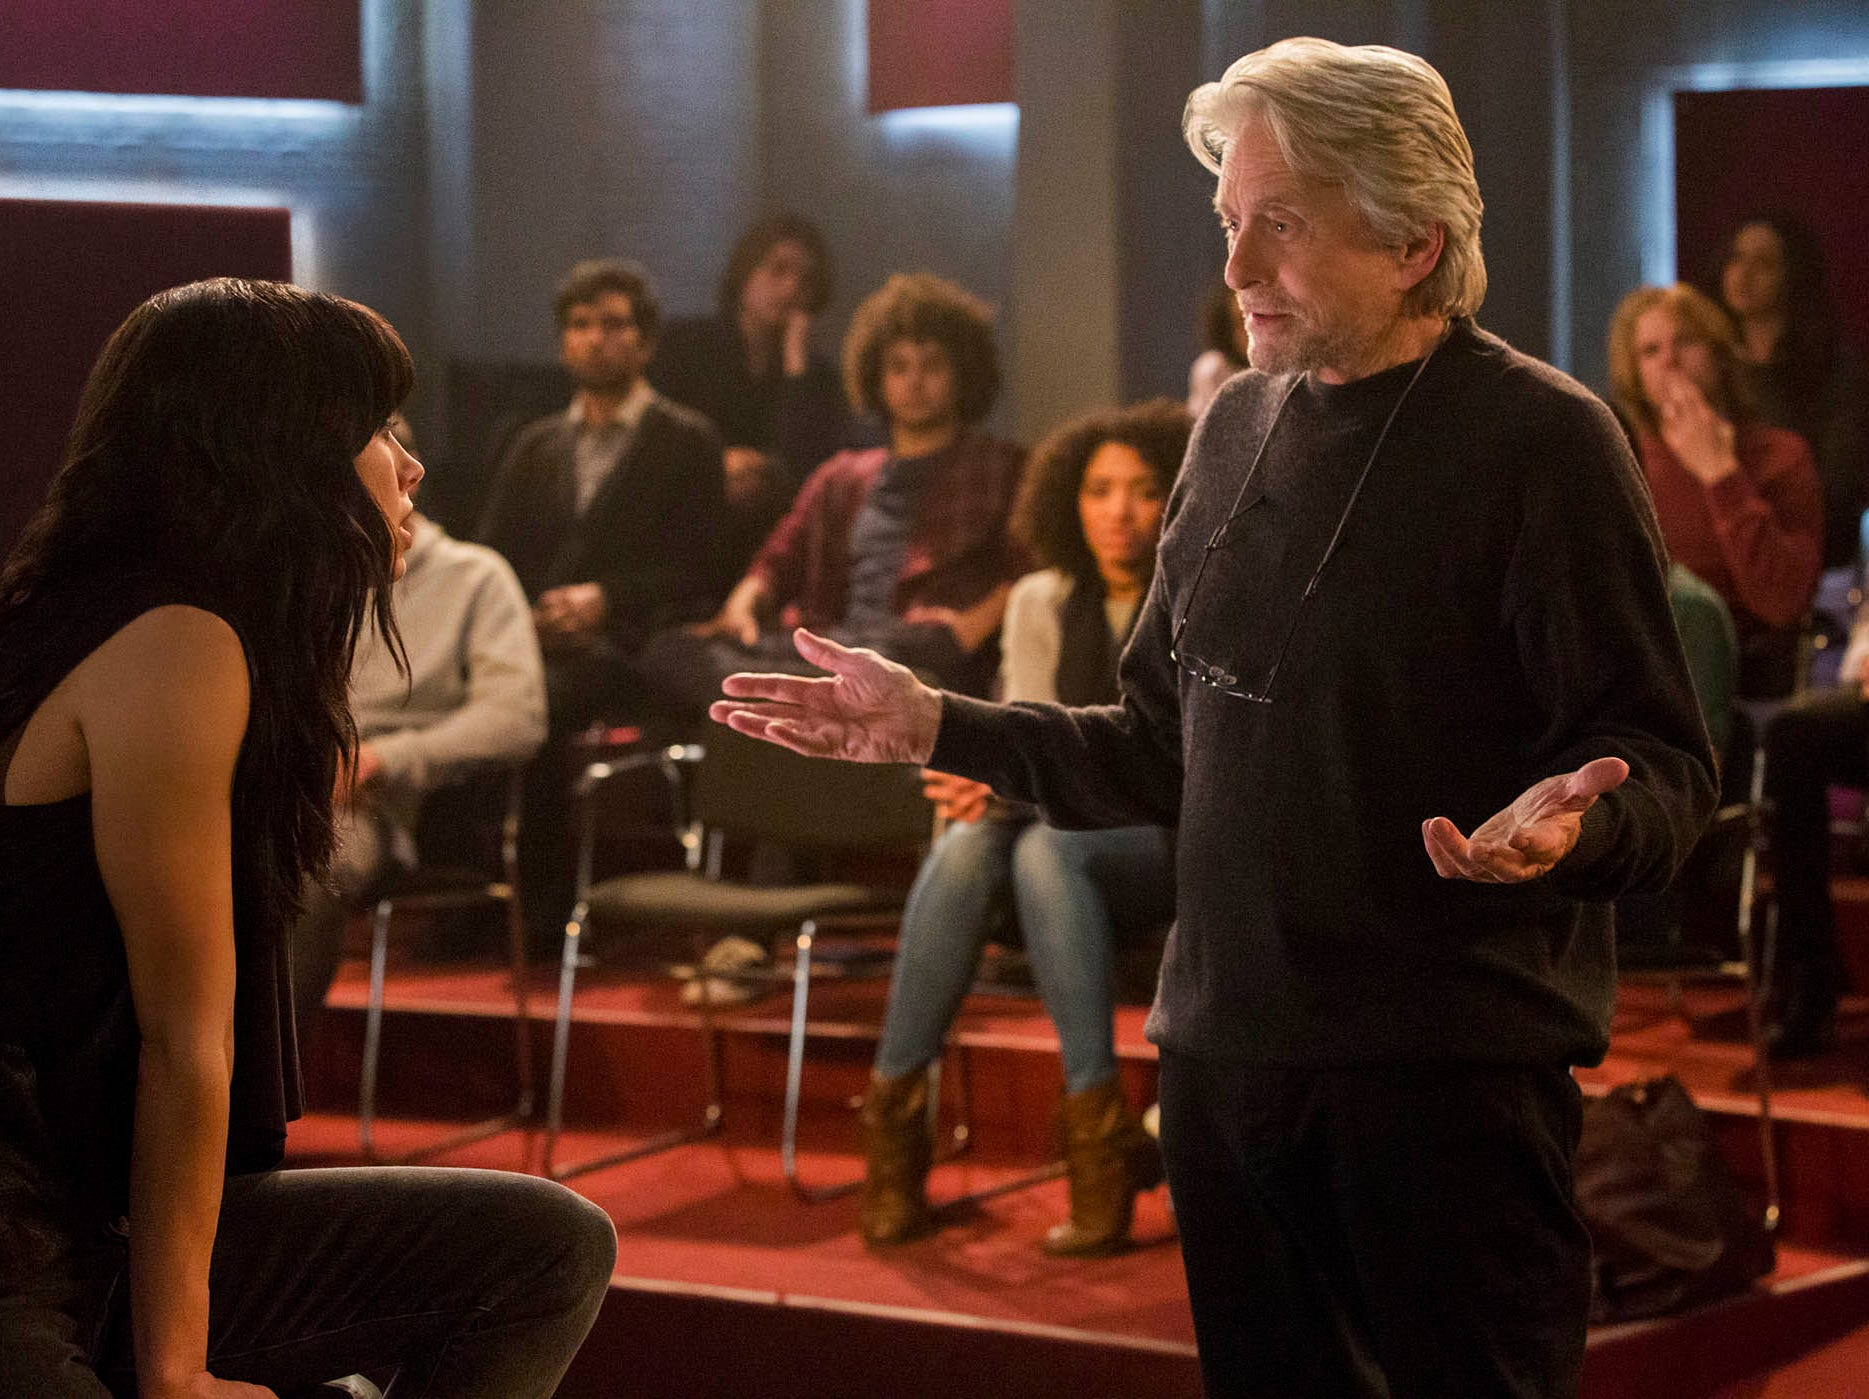 Michael Douglas and his 'Kominsky Method': 'The aging process is not exactly a belly laugh'